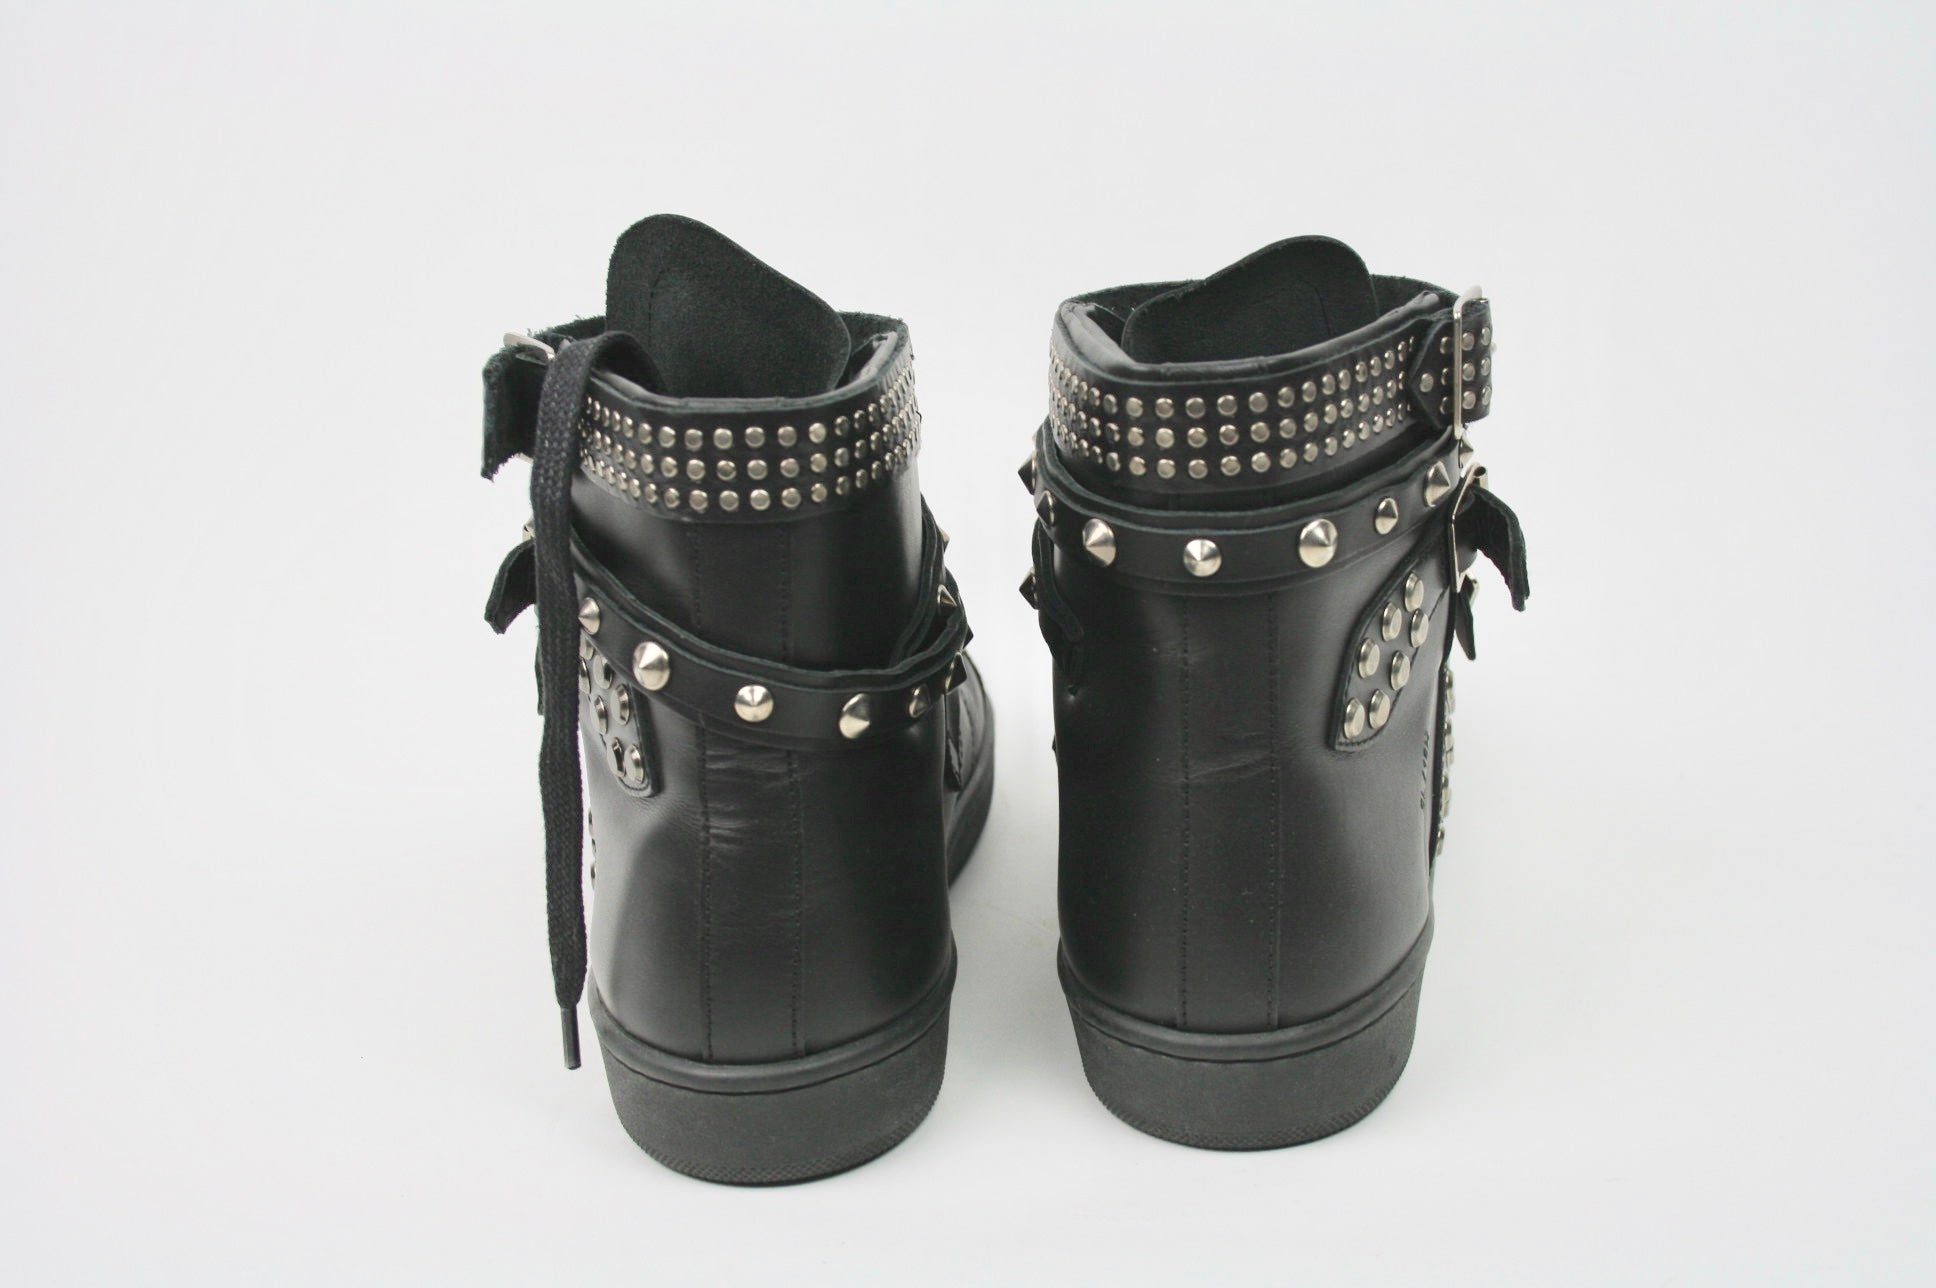 SAINT LAURENT booties 38,5 - Iconics Preloved Luxury